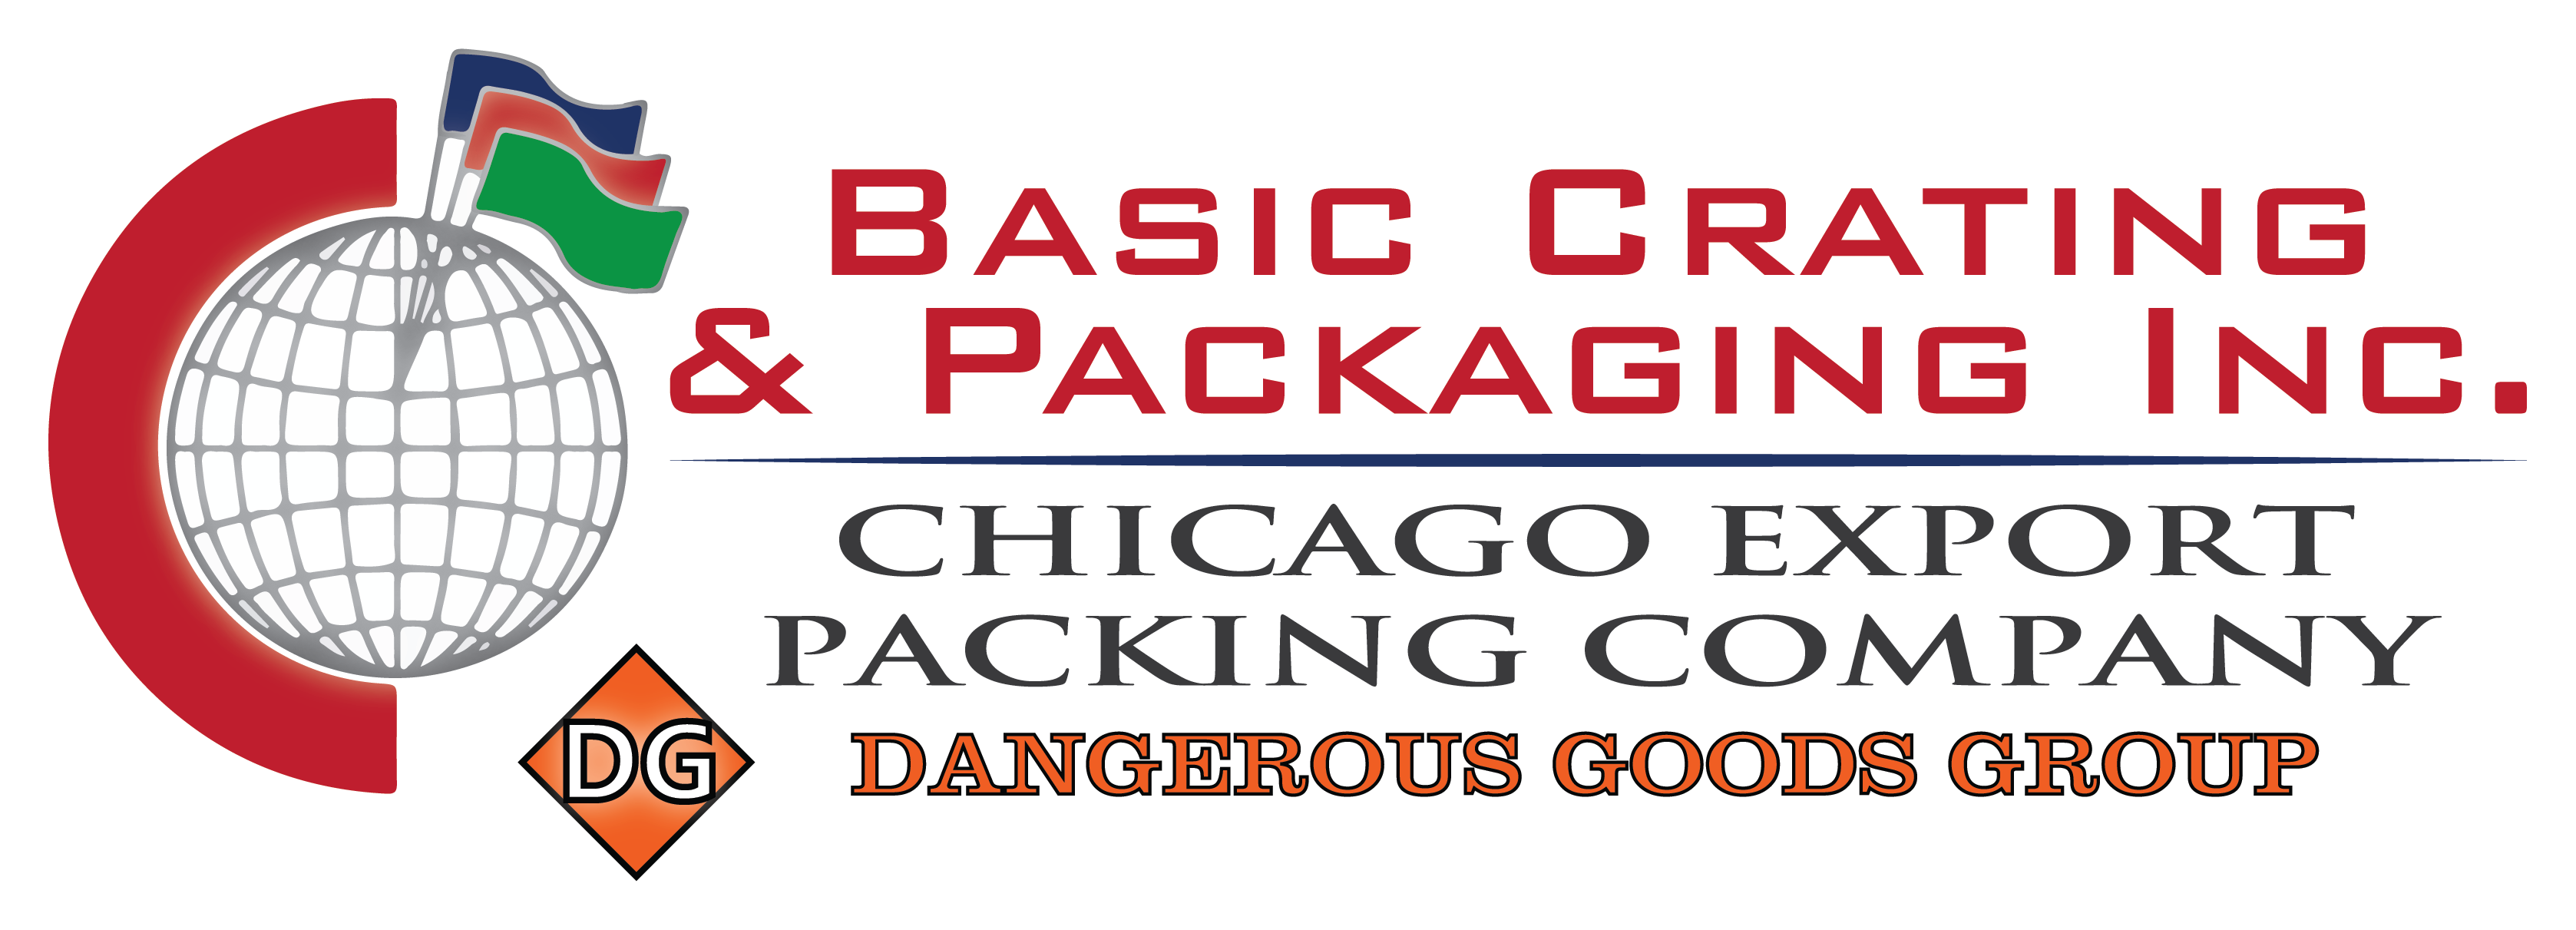 Basic Crating & Packaging, Inc.